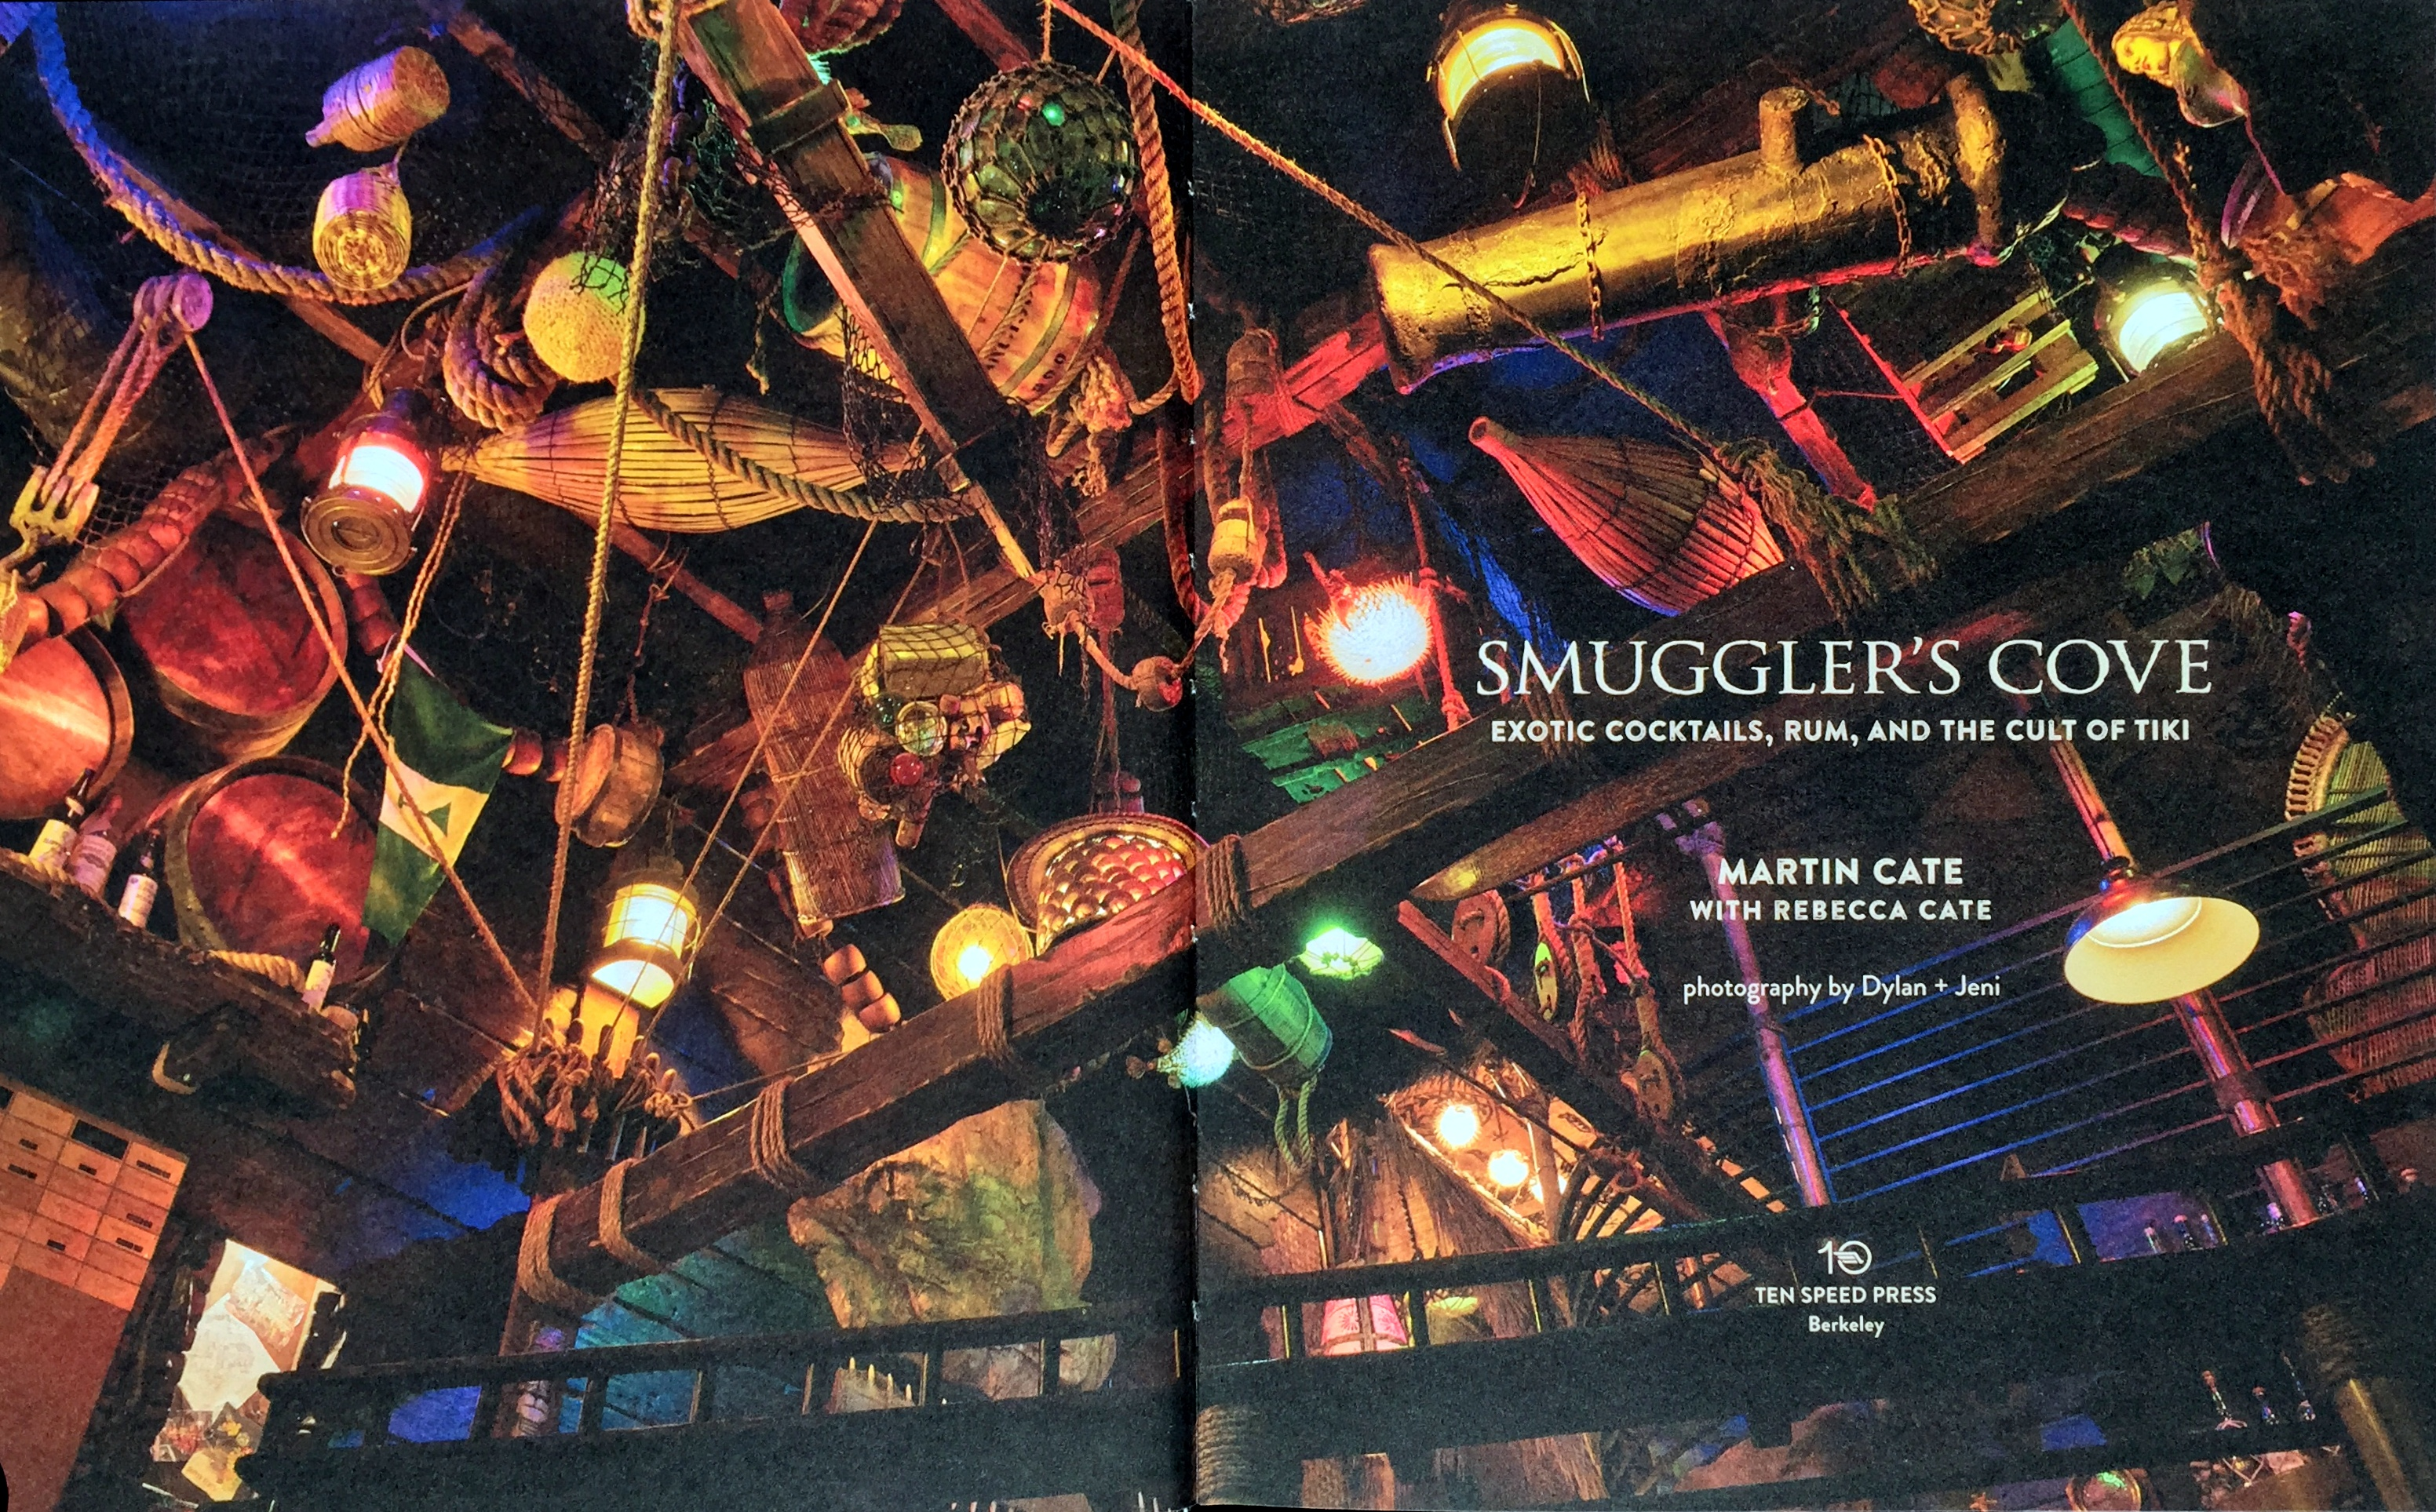 Smuggler's Cove book